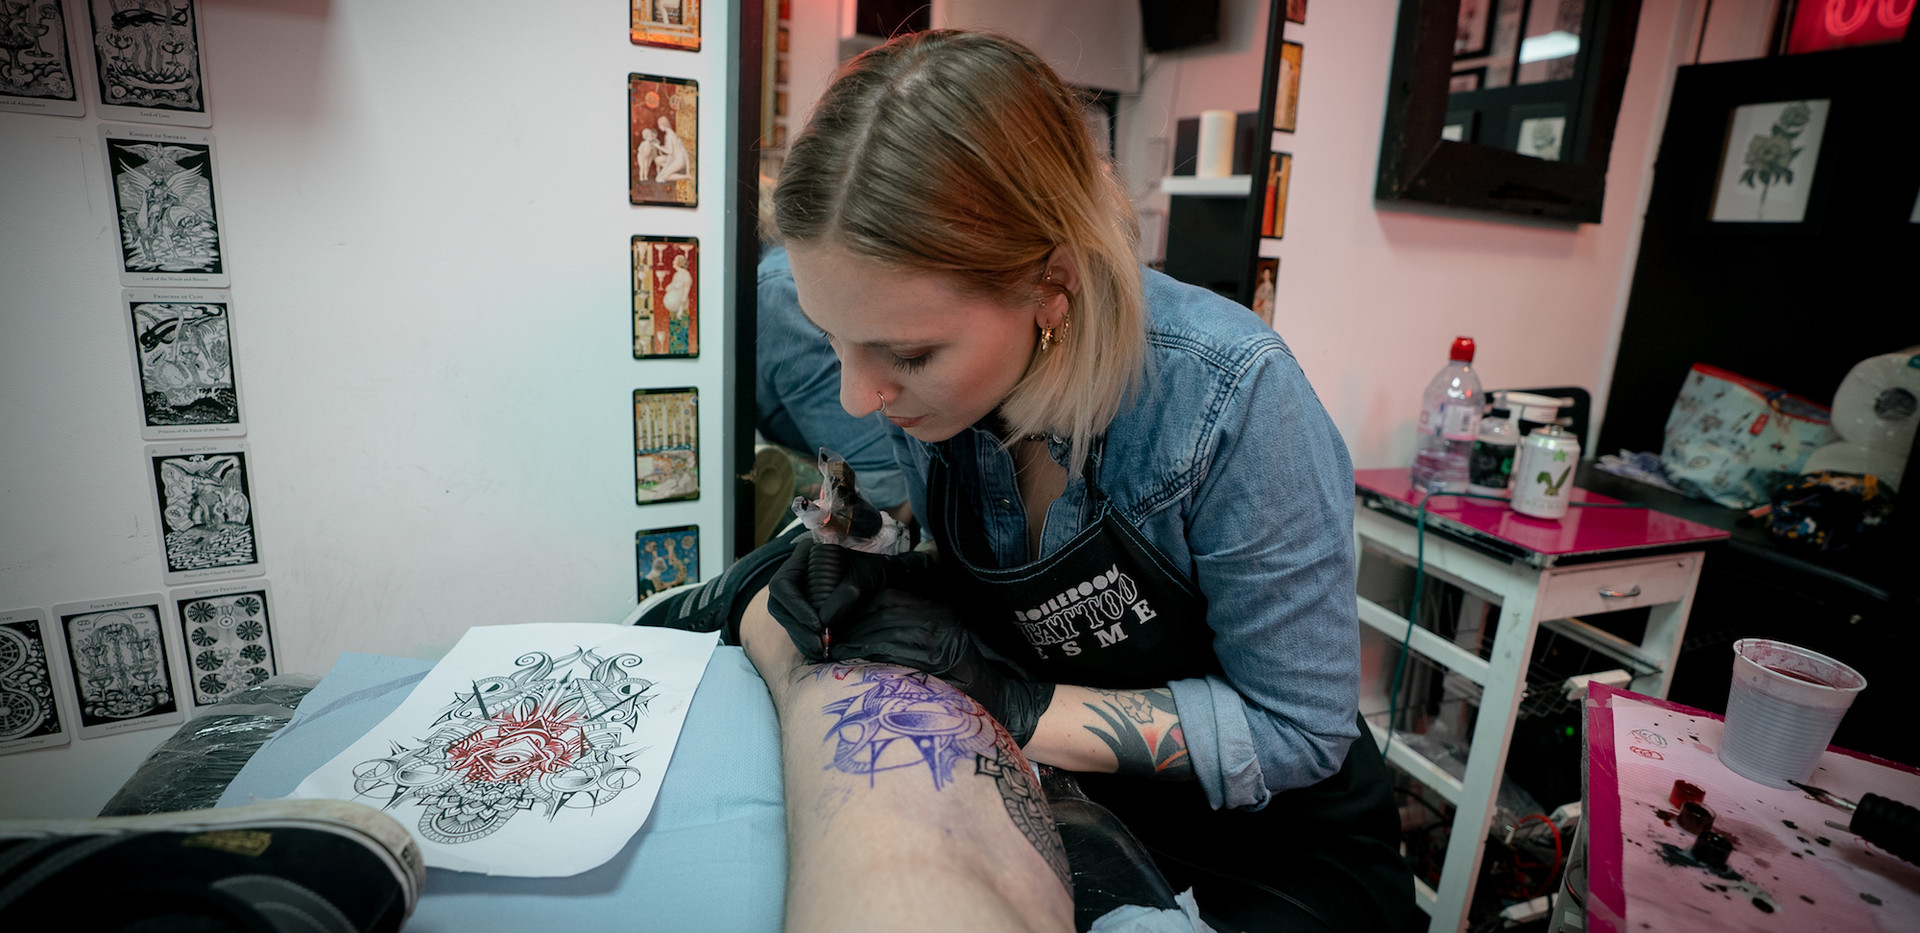 V4 The Kraken Artwork Designer Esme Baker Tattoo Artist Working at Boileroom Tattoo